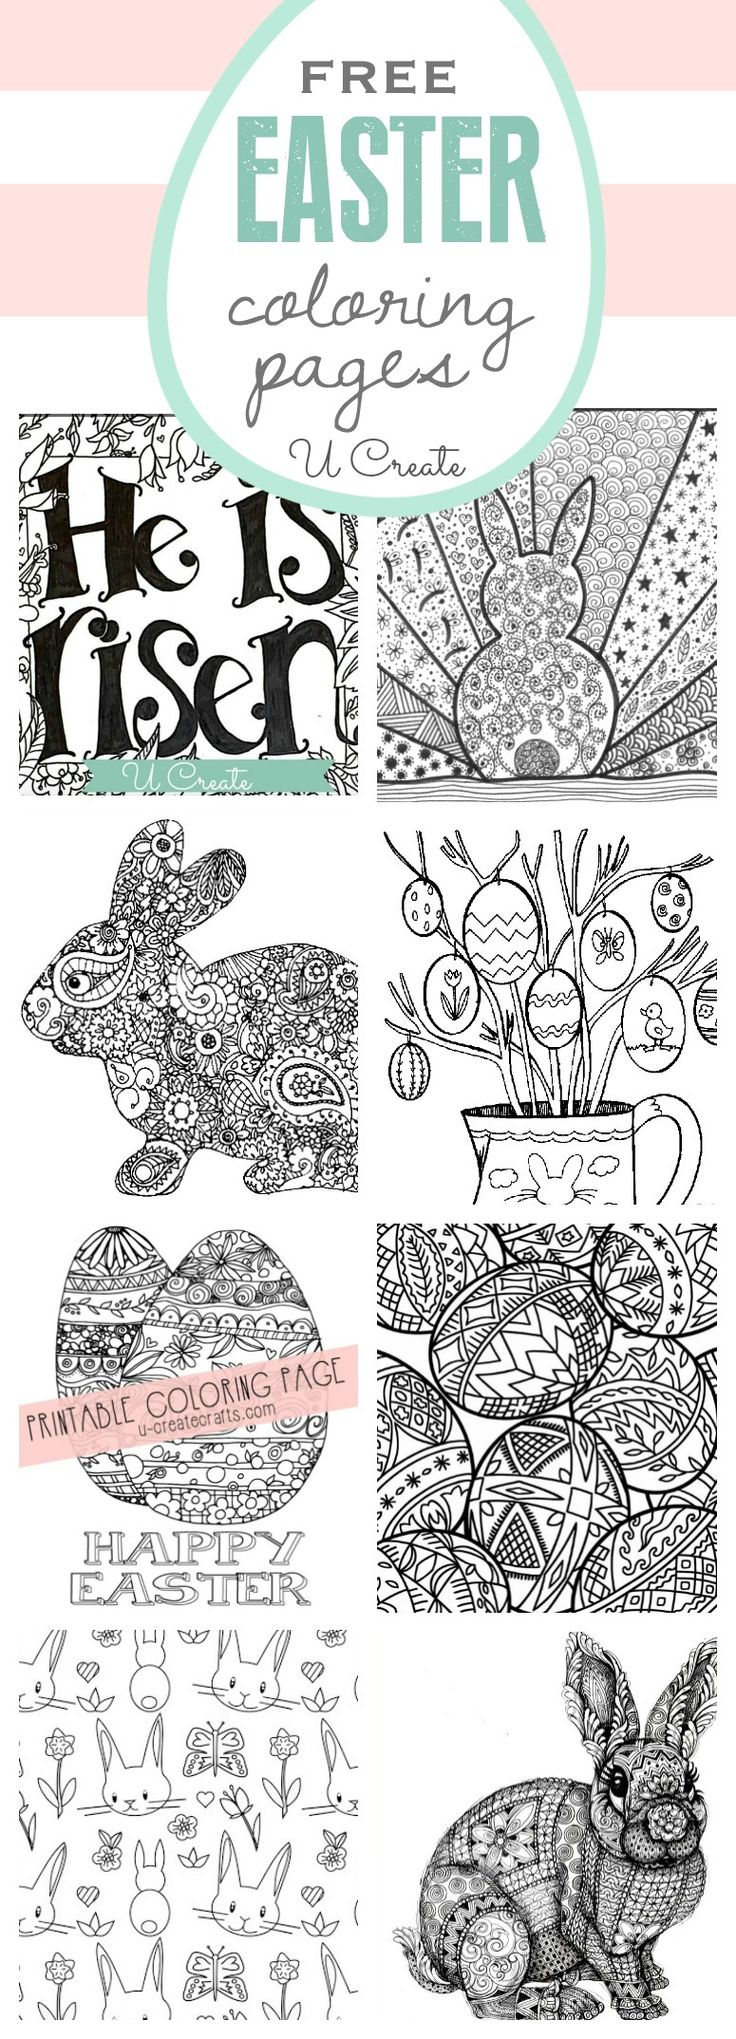 best 25 easter drawings ideas only on pinterest easter art